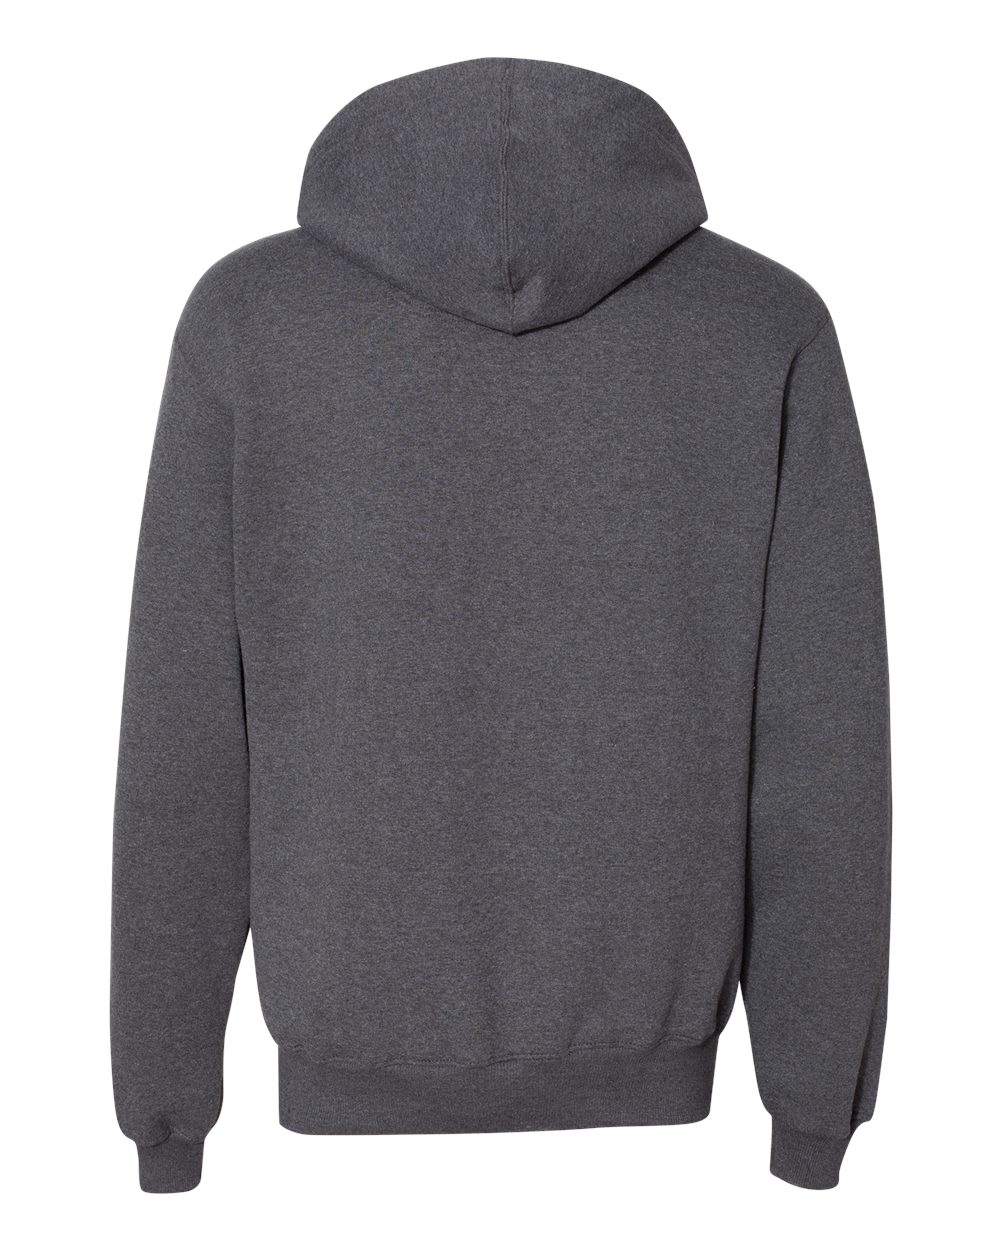 Champion-Mens-Cotton-Max-Hooded-Sweatshirt-Hoodie-Pullover-S171-up-to-3XL miniature 10